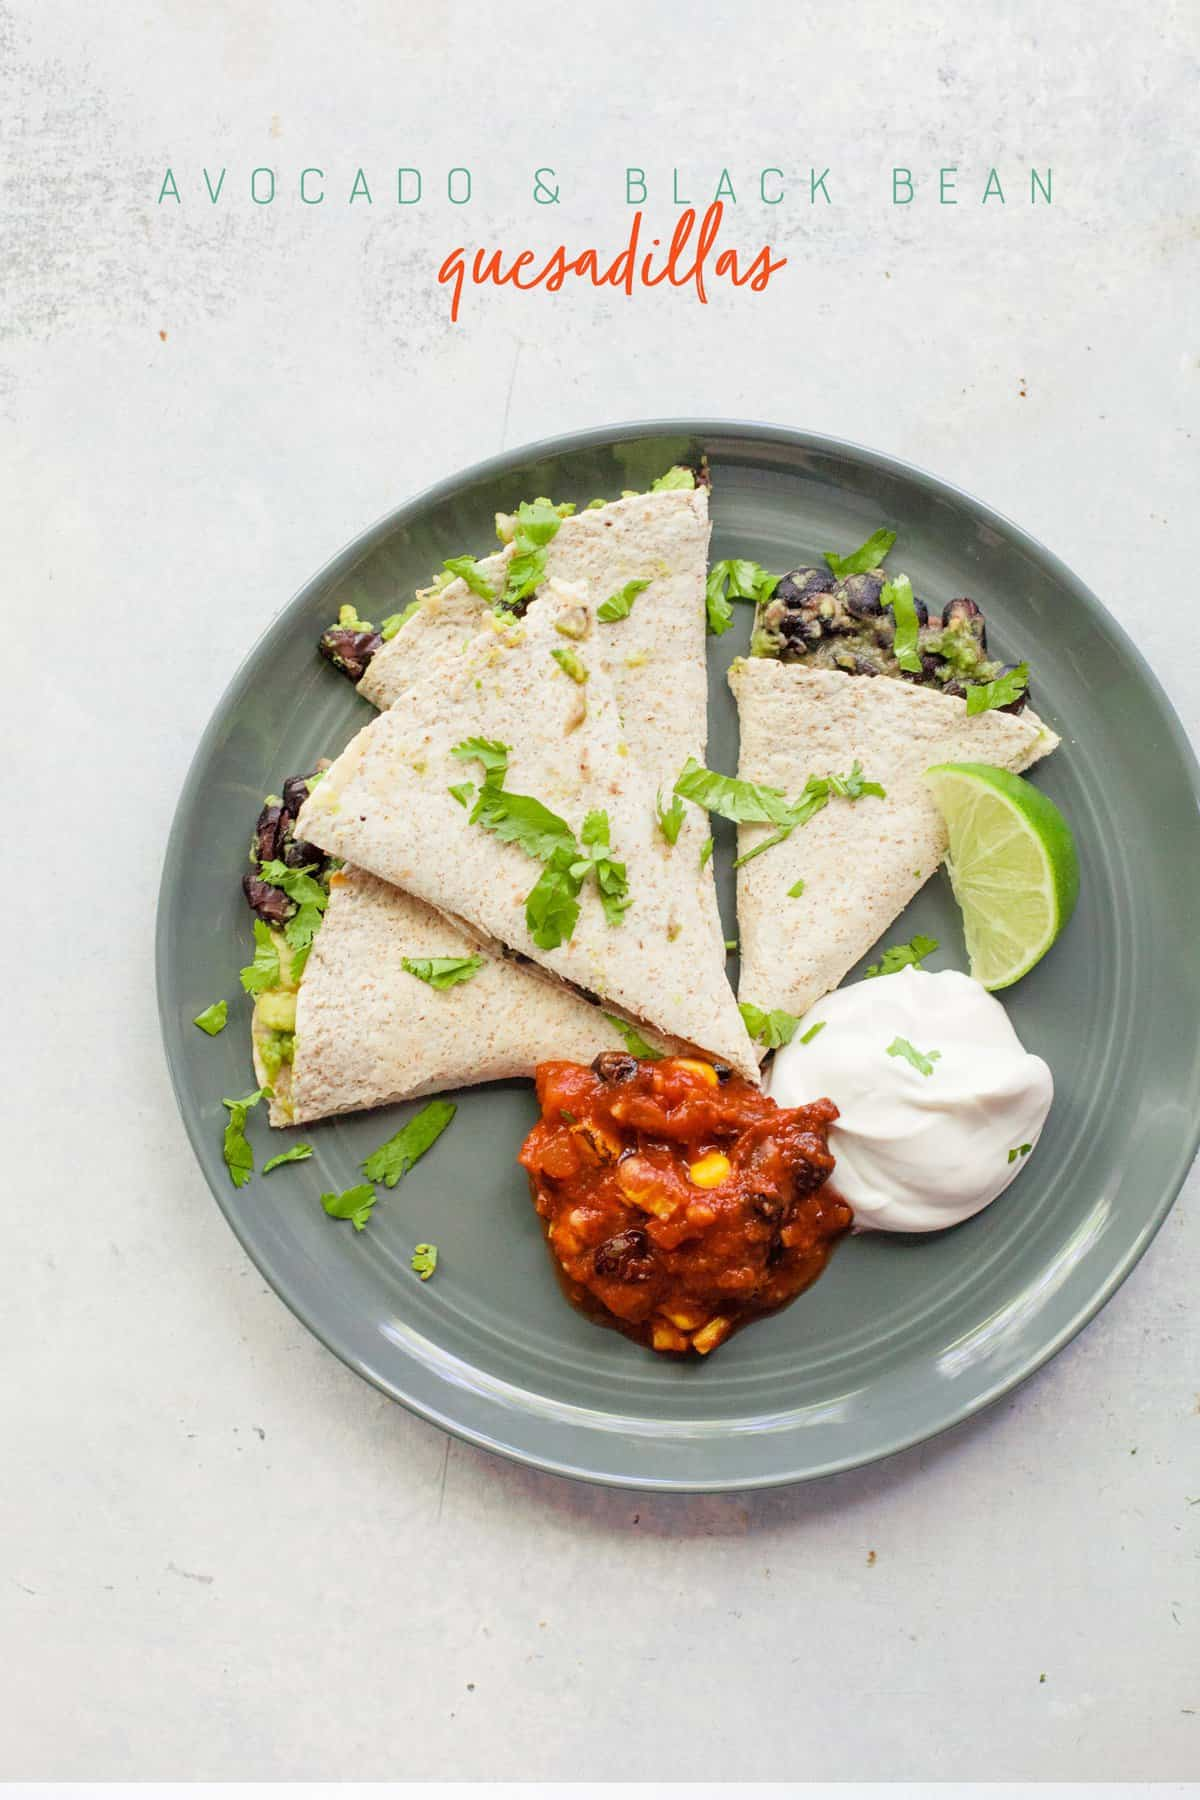 Avocado and Black Bean Quesadillas